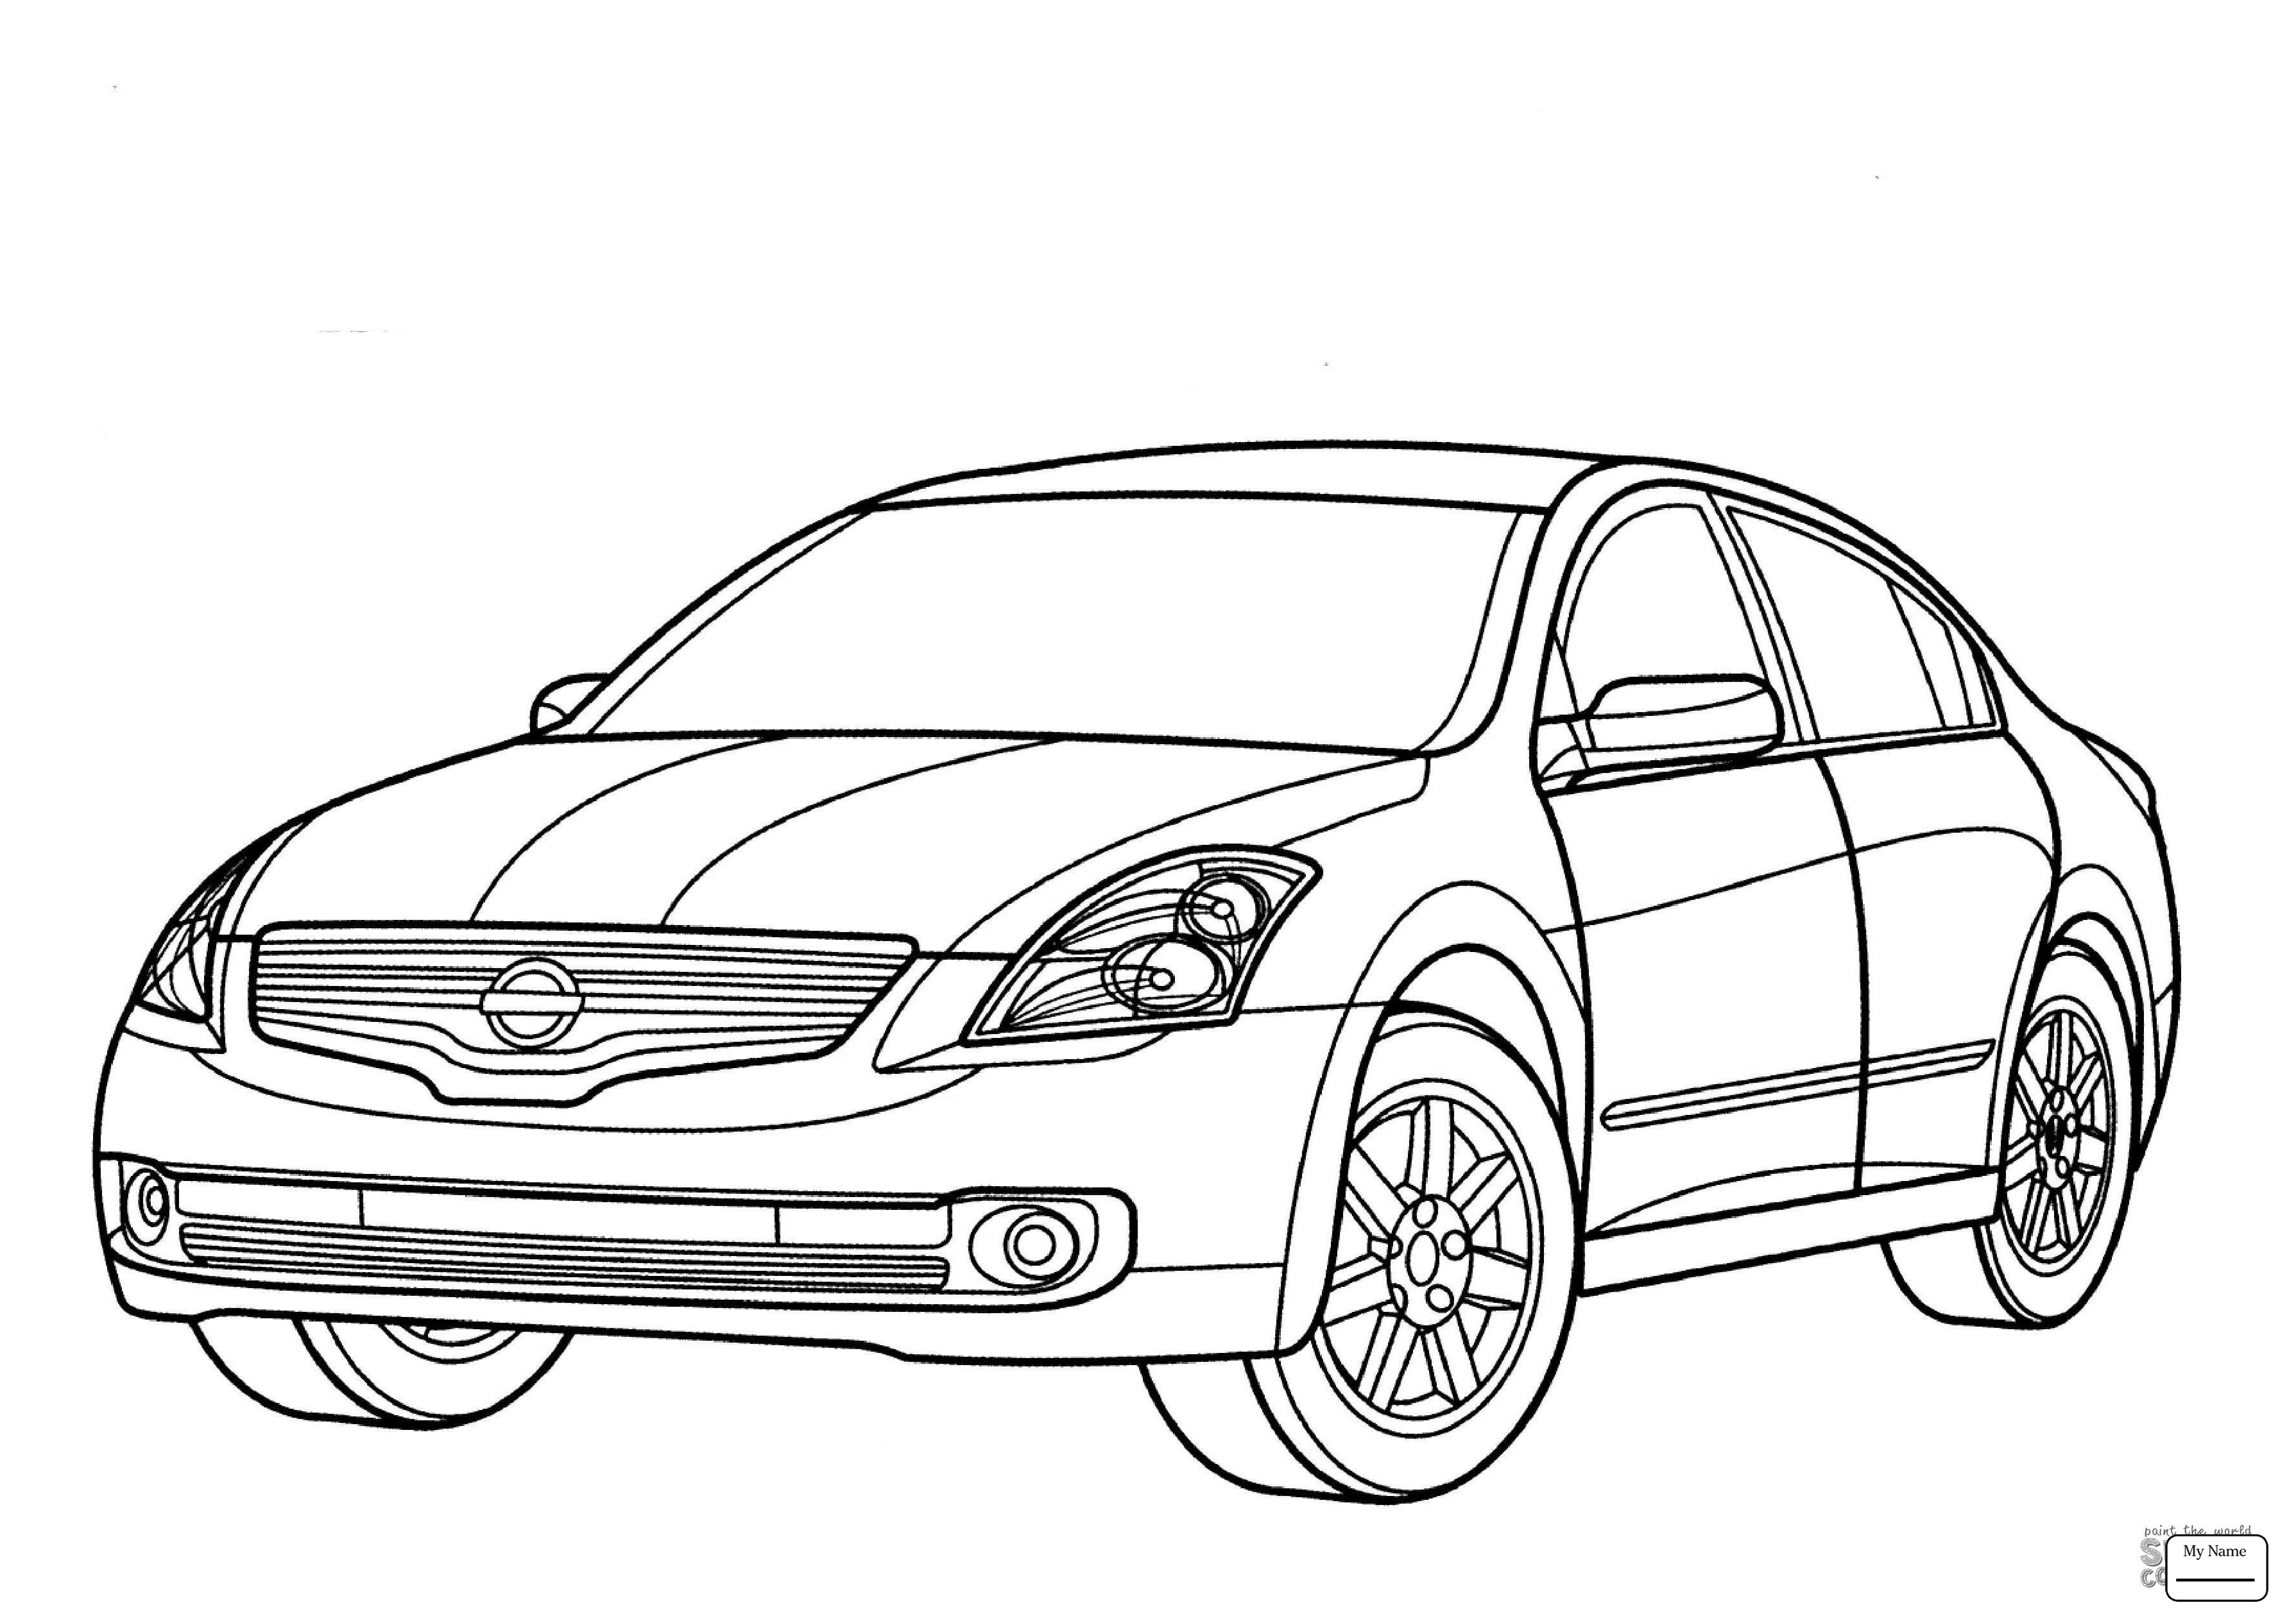 nissan gtr nismo coloring pages | Skyline Car Drawing at GetDrawings.com | Free for personal ...